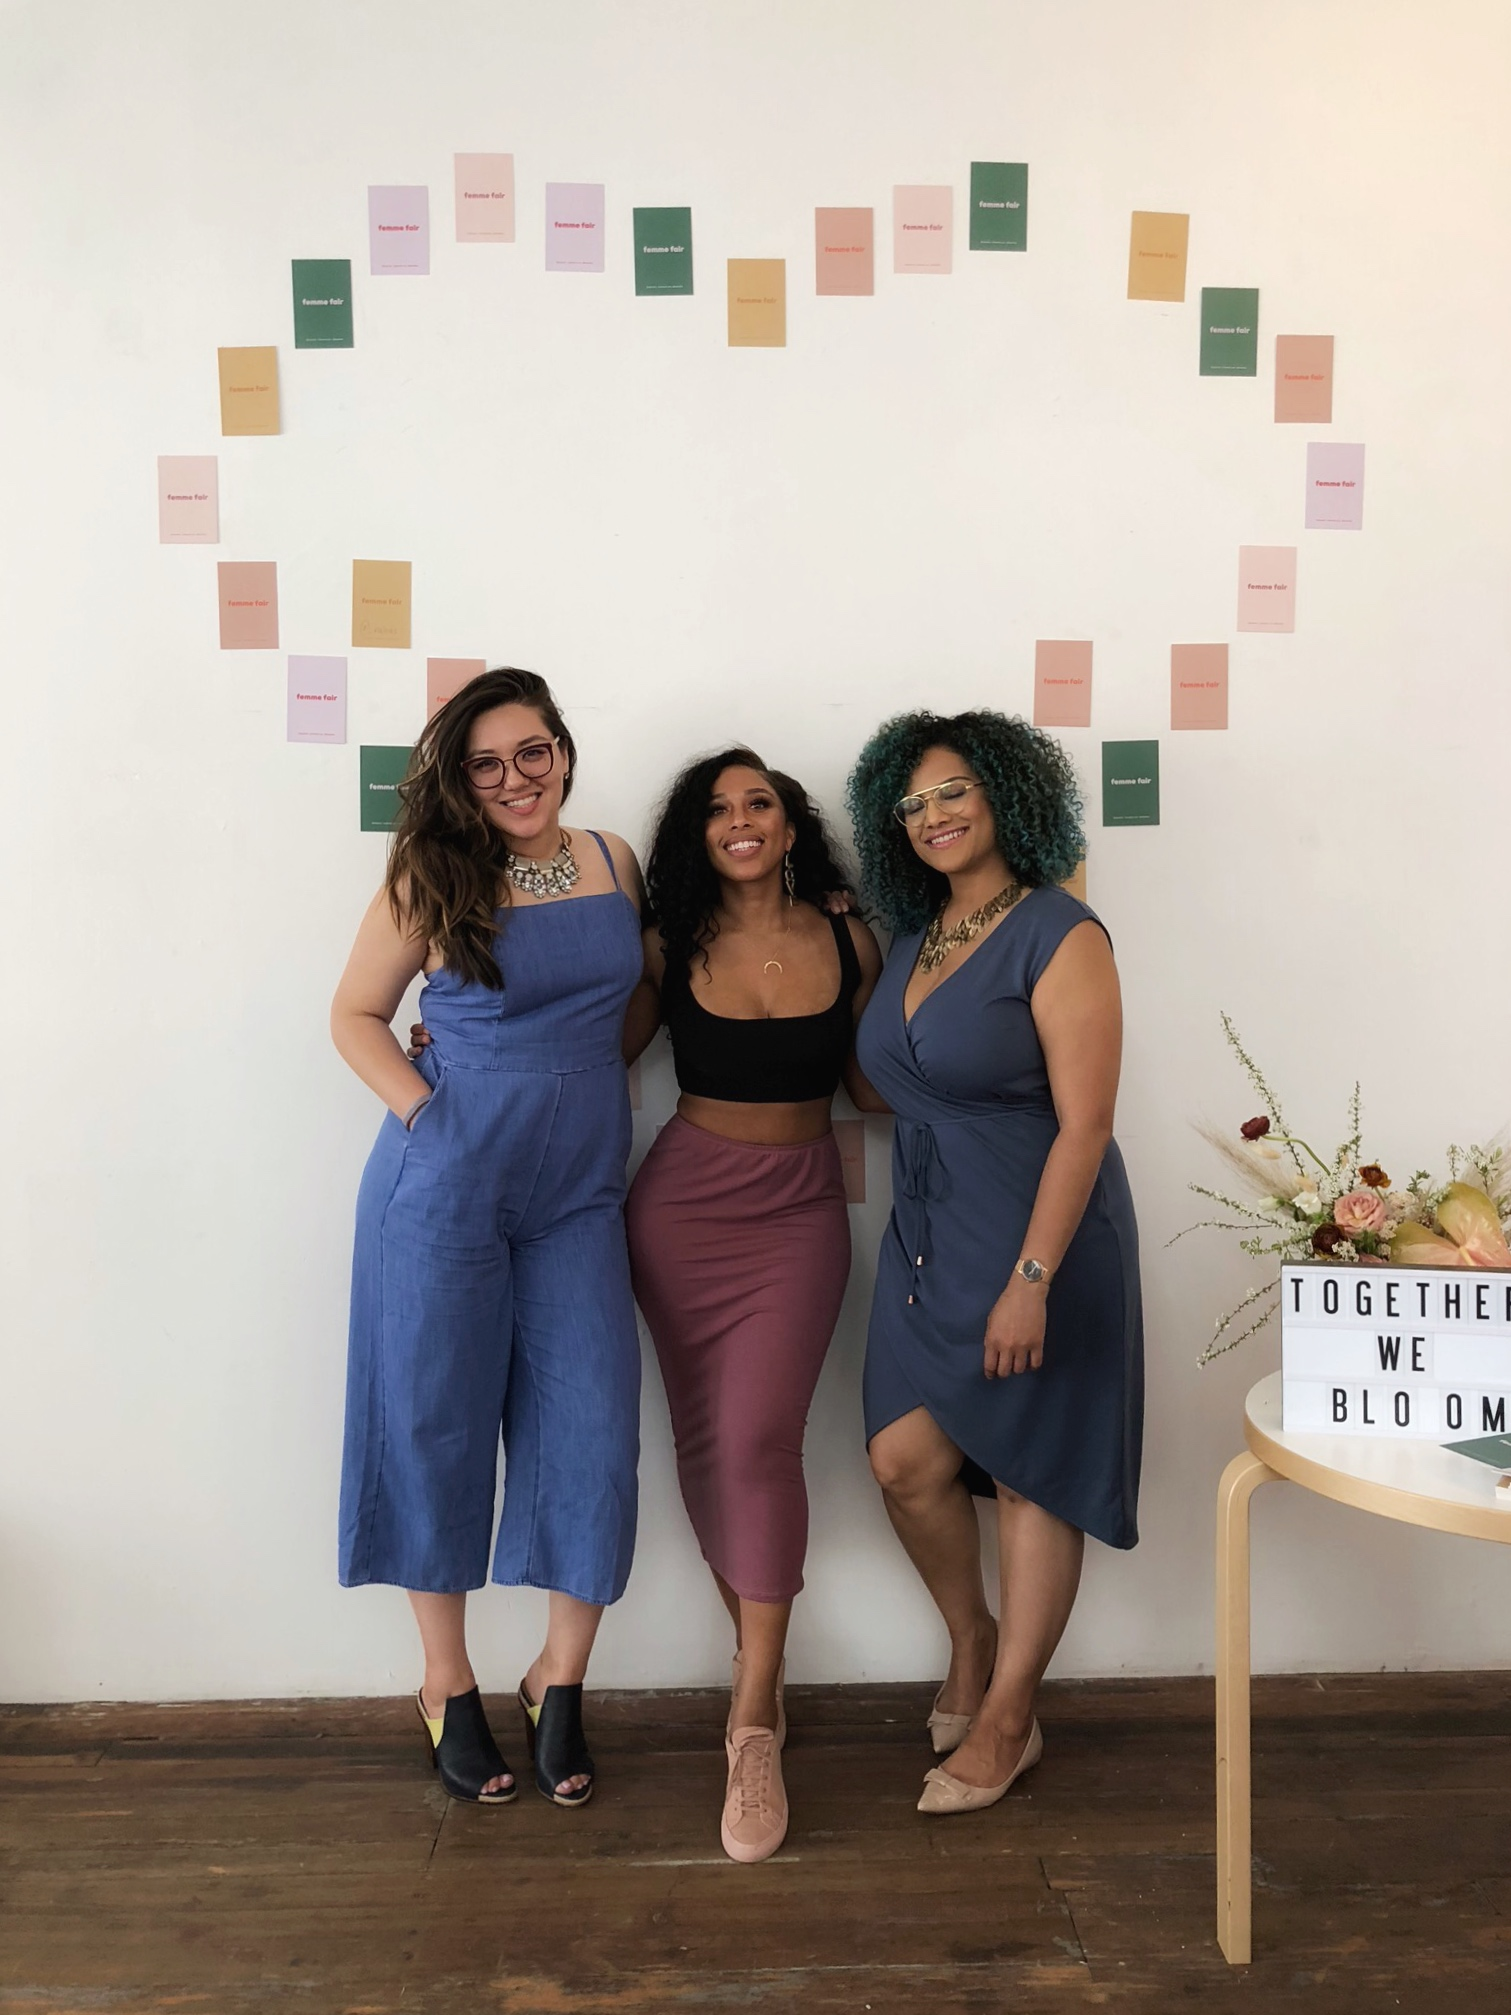 Here I am with my friends @lovechauntie & @stayreddy. You'll see posts from us if you search #femmefairxpeerspace